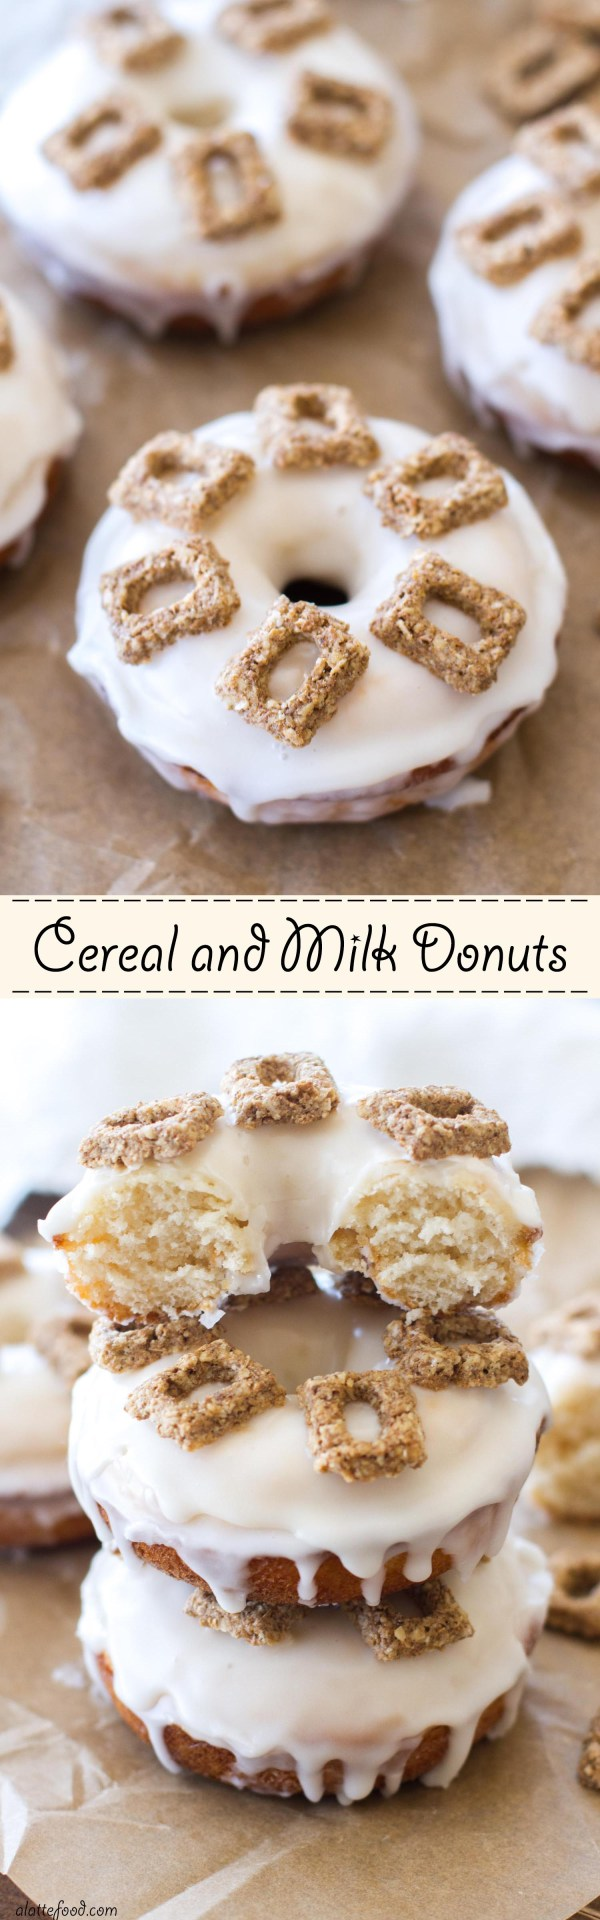 This baked buttermilk donut recipe is based on the classic breakfast choice of cereal and milk! A buttermilk donut dipped in a vanilla glaze and topped with pieces of cereal makes this a sweet breakfast treat!